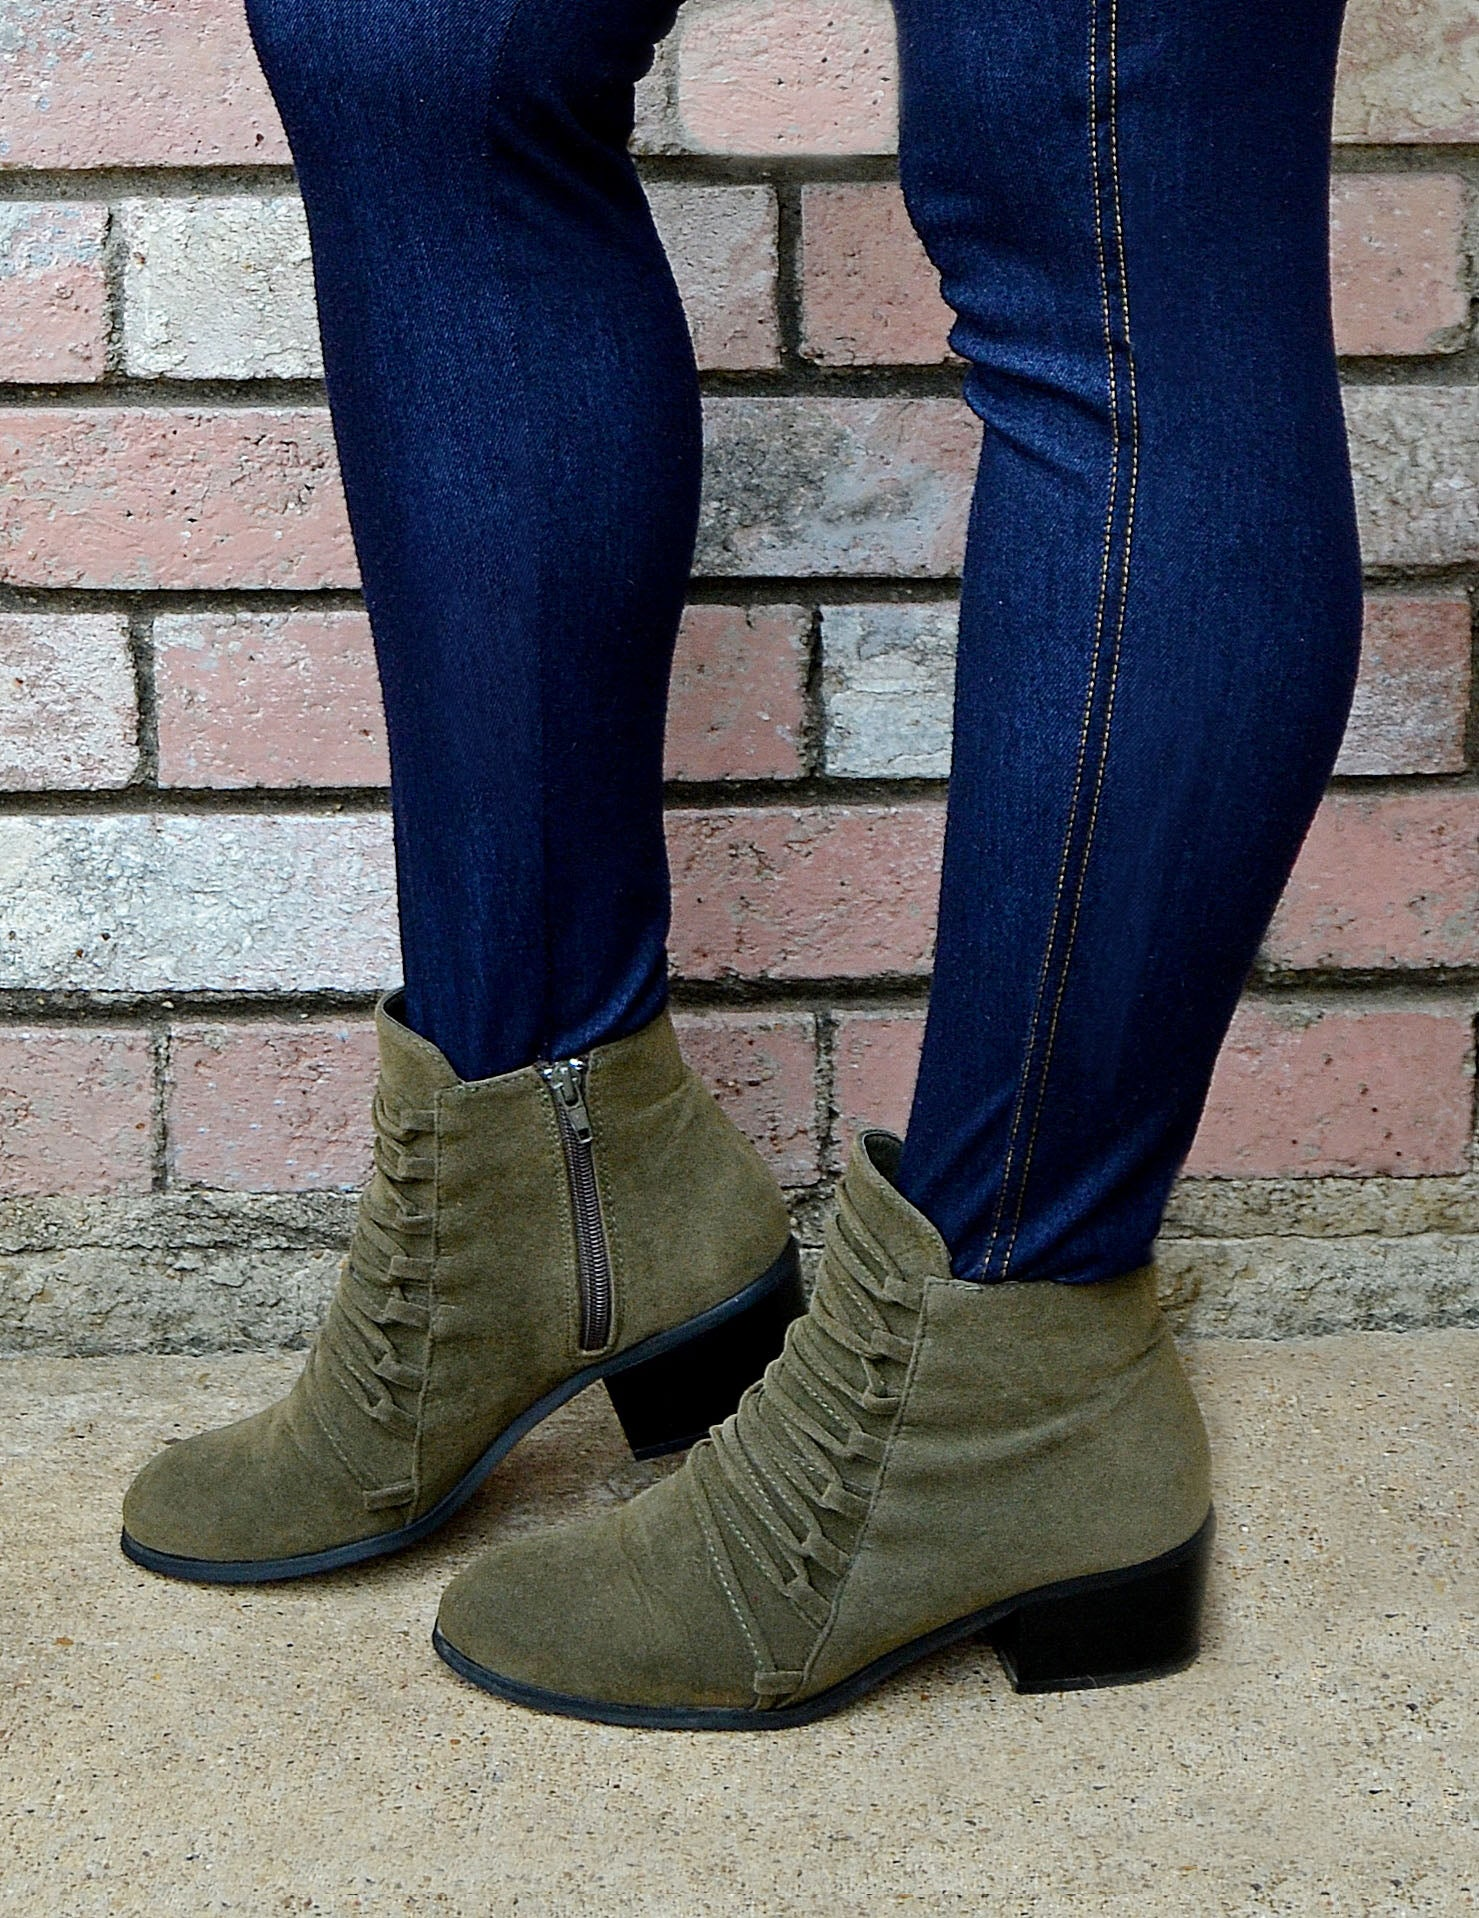 Women's Olive Green Suede Lace-Up Ankle Booties